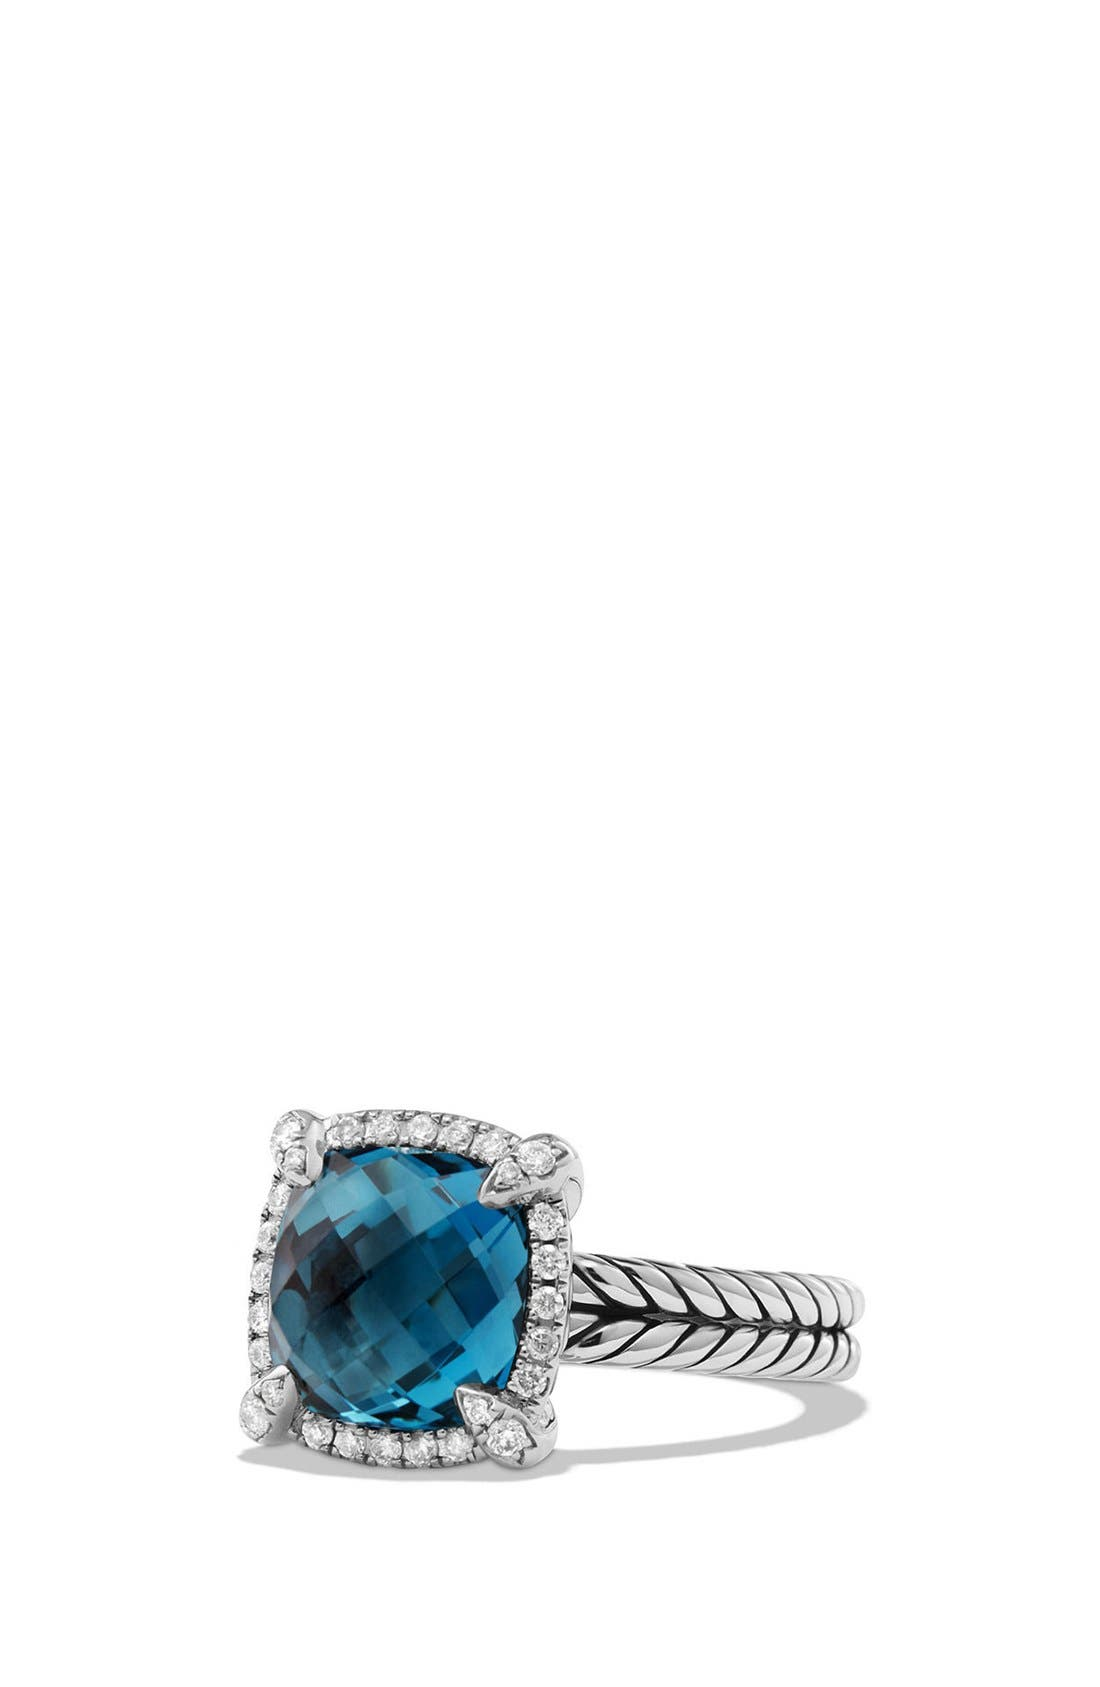 David Yurman 'Châtelaine' Small Pavé Bezel Ring with Diamonds